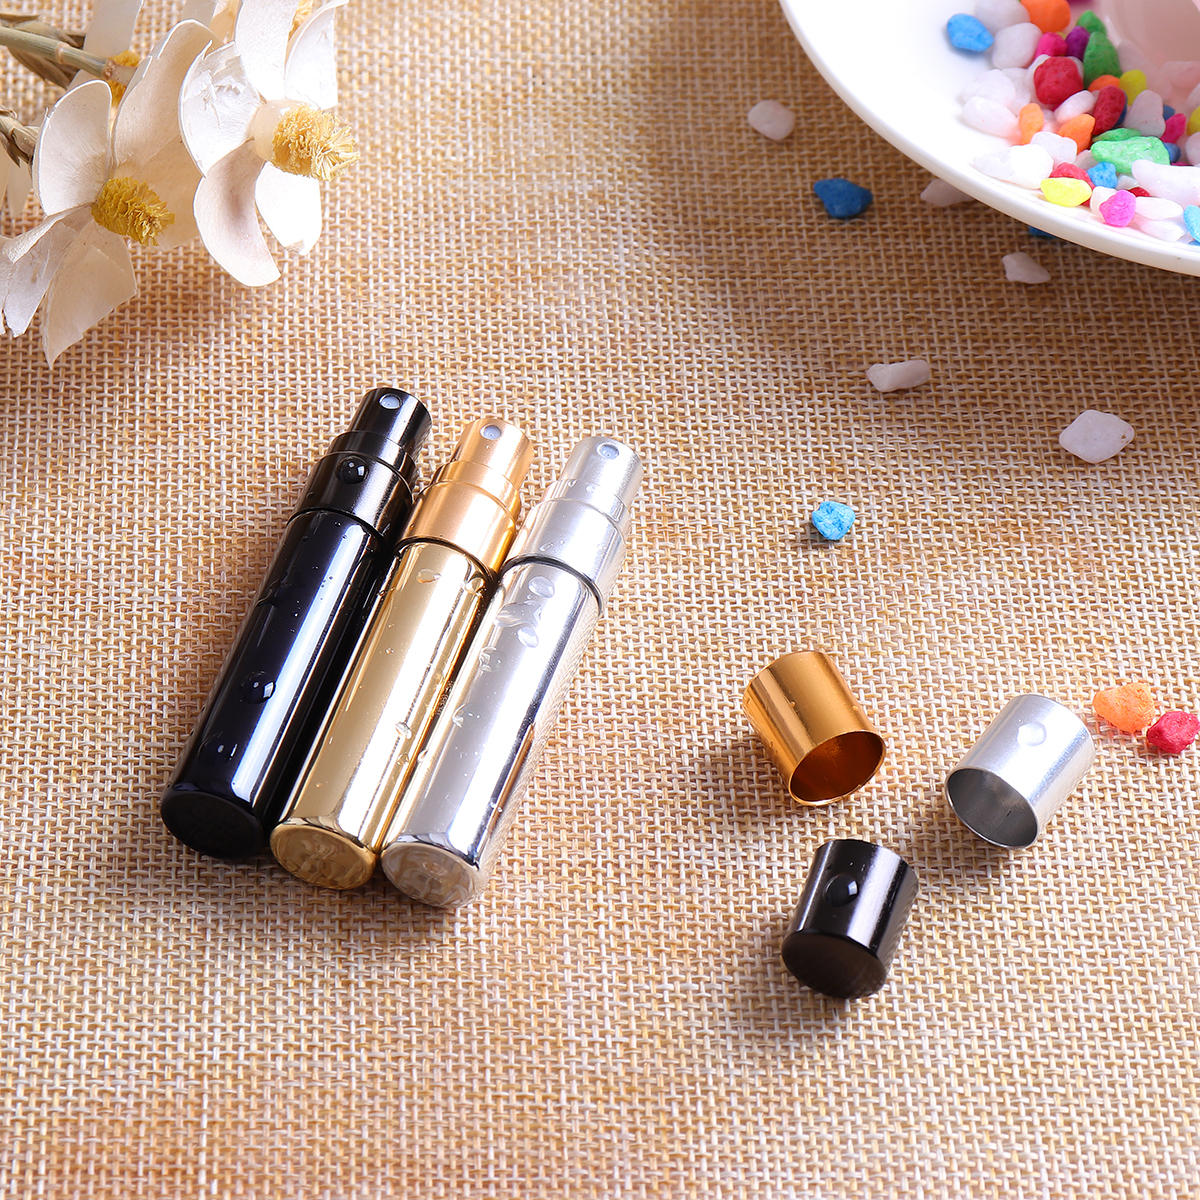 12ml Empty Perfume Bottle Metal Roller Ball Refillable - 8